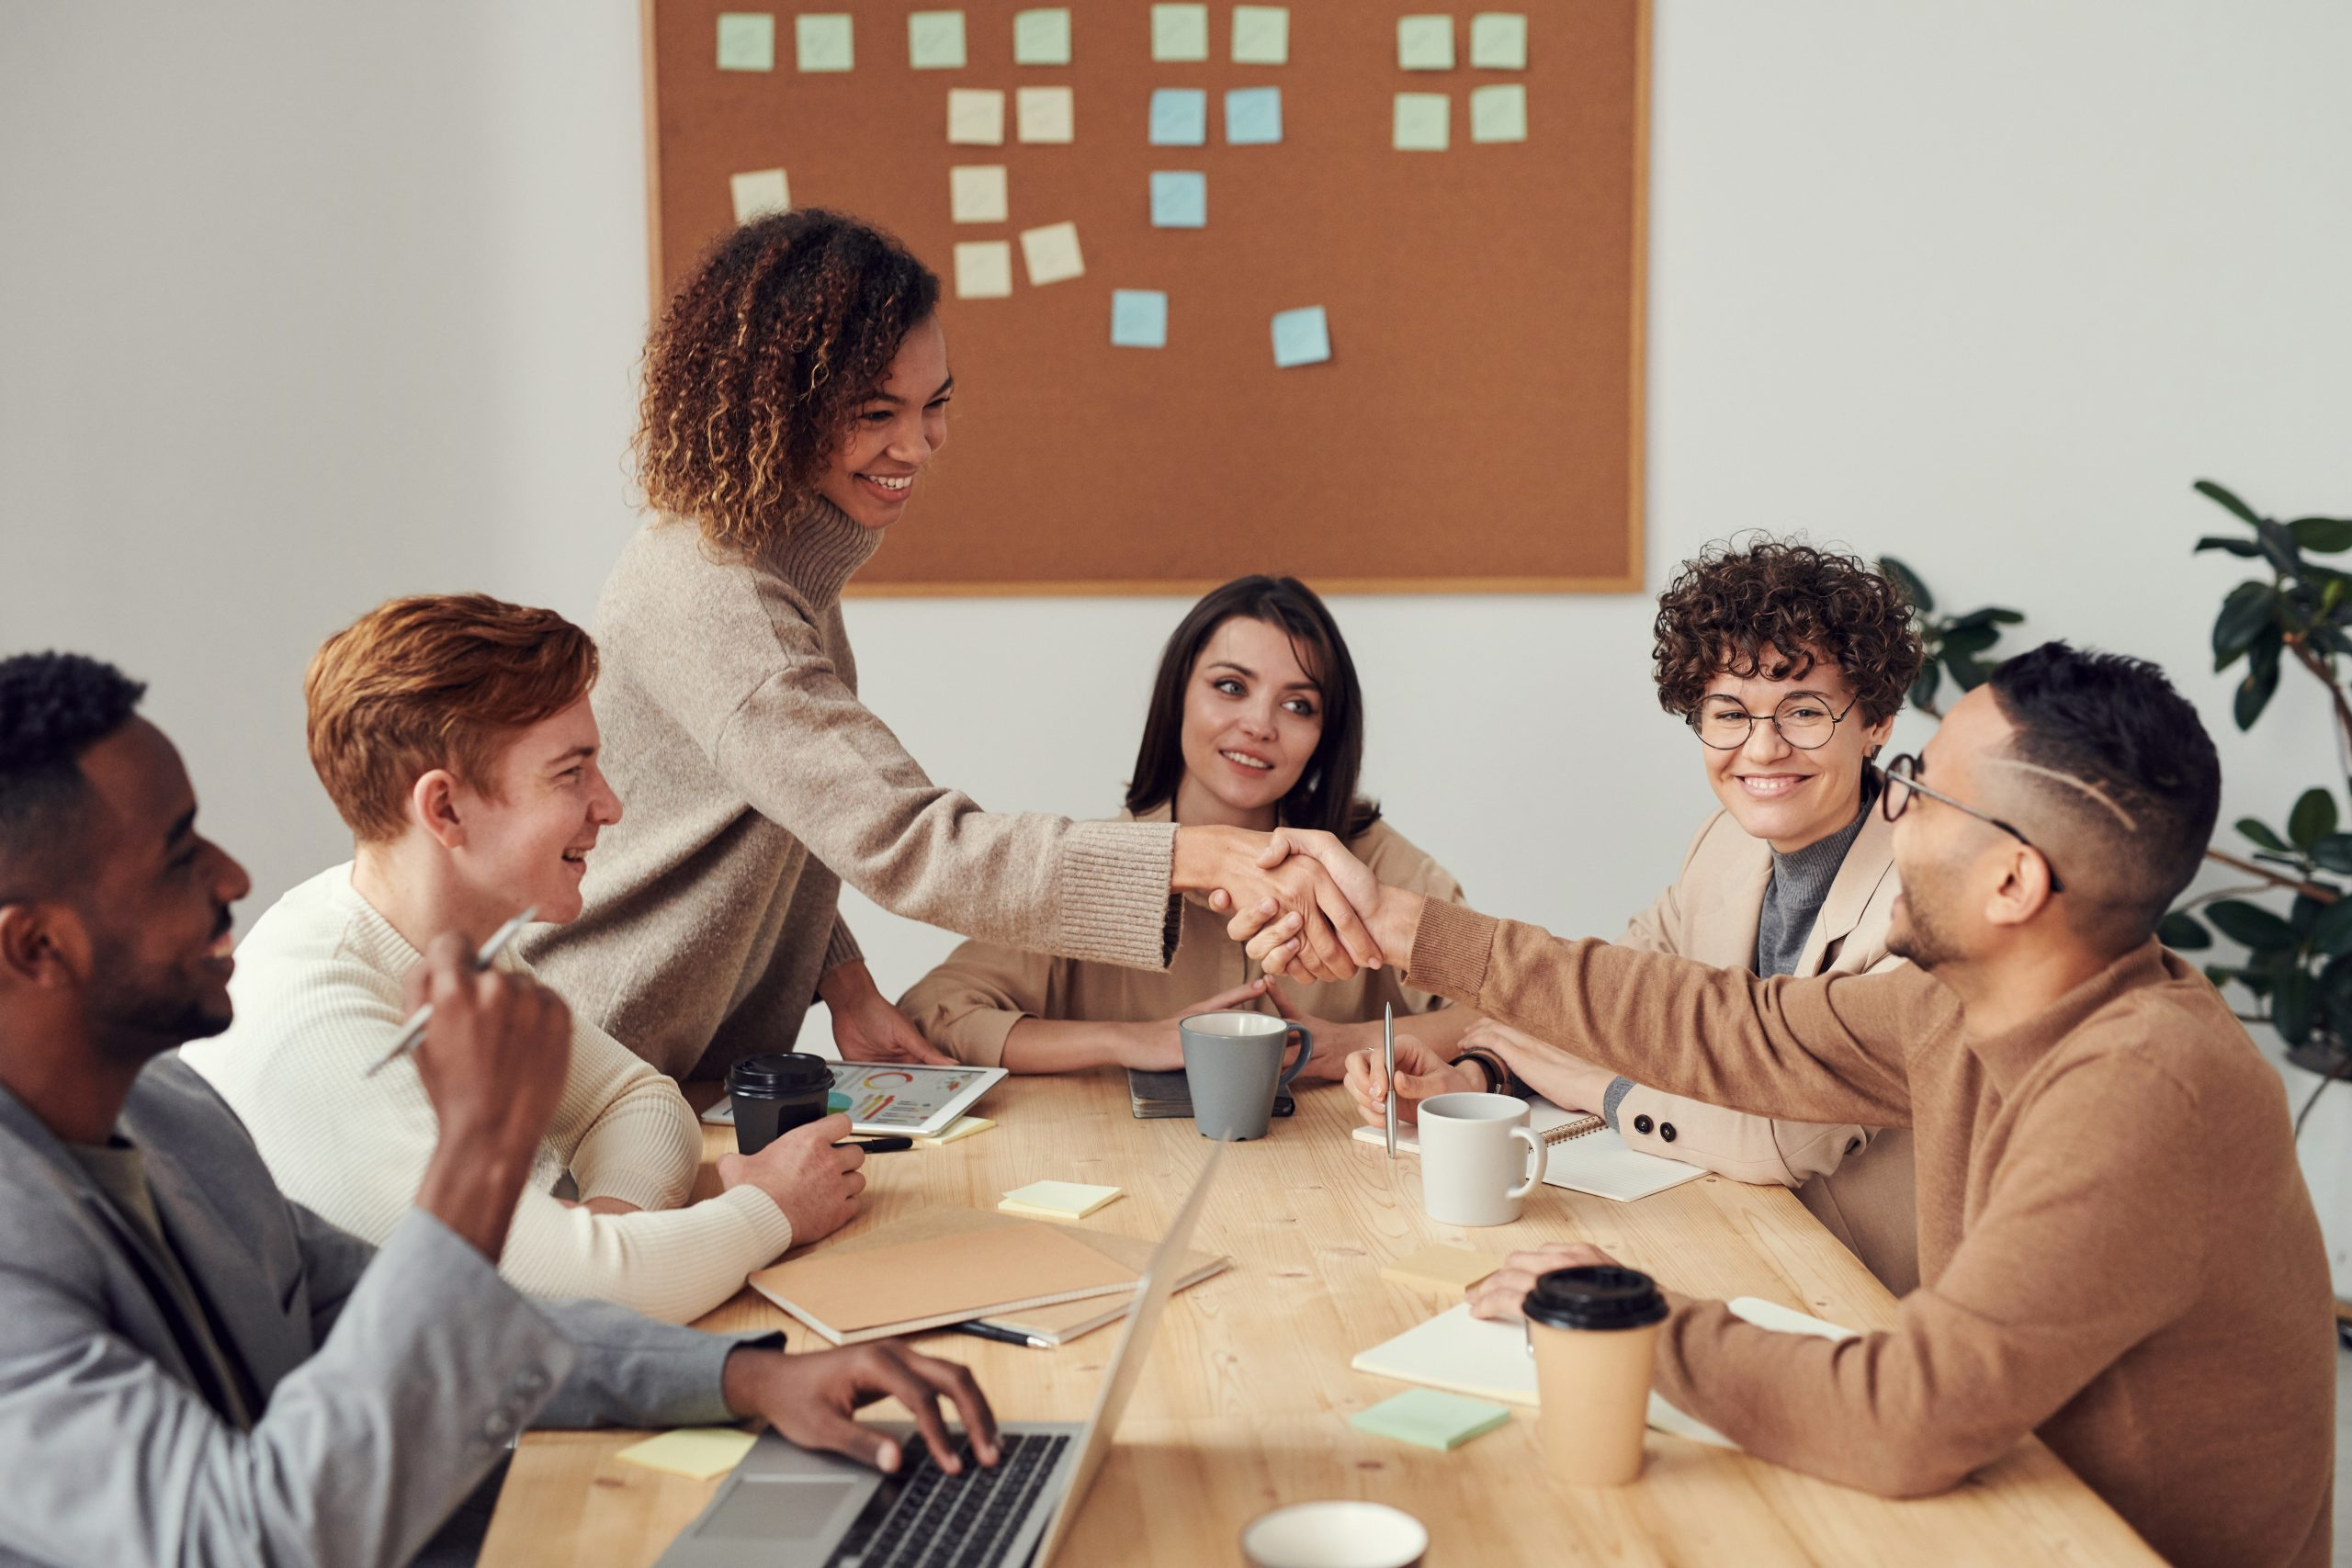 Building Connections at Your Events